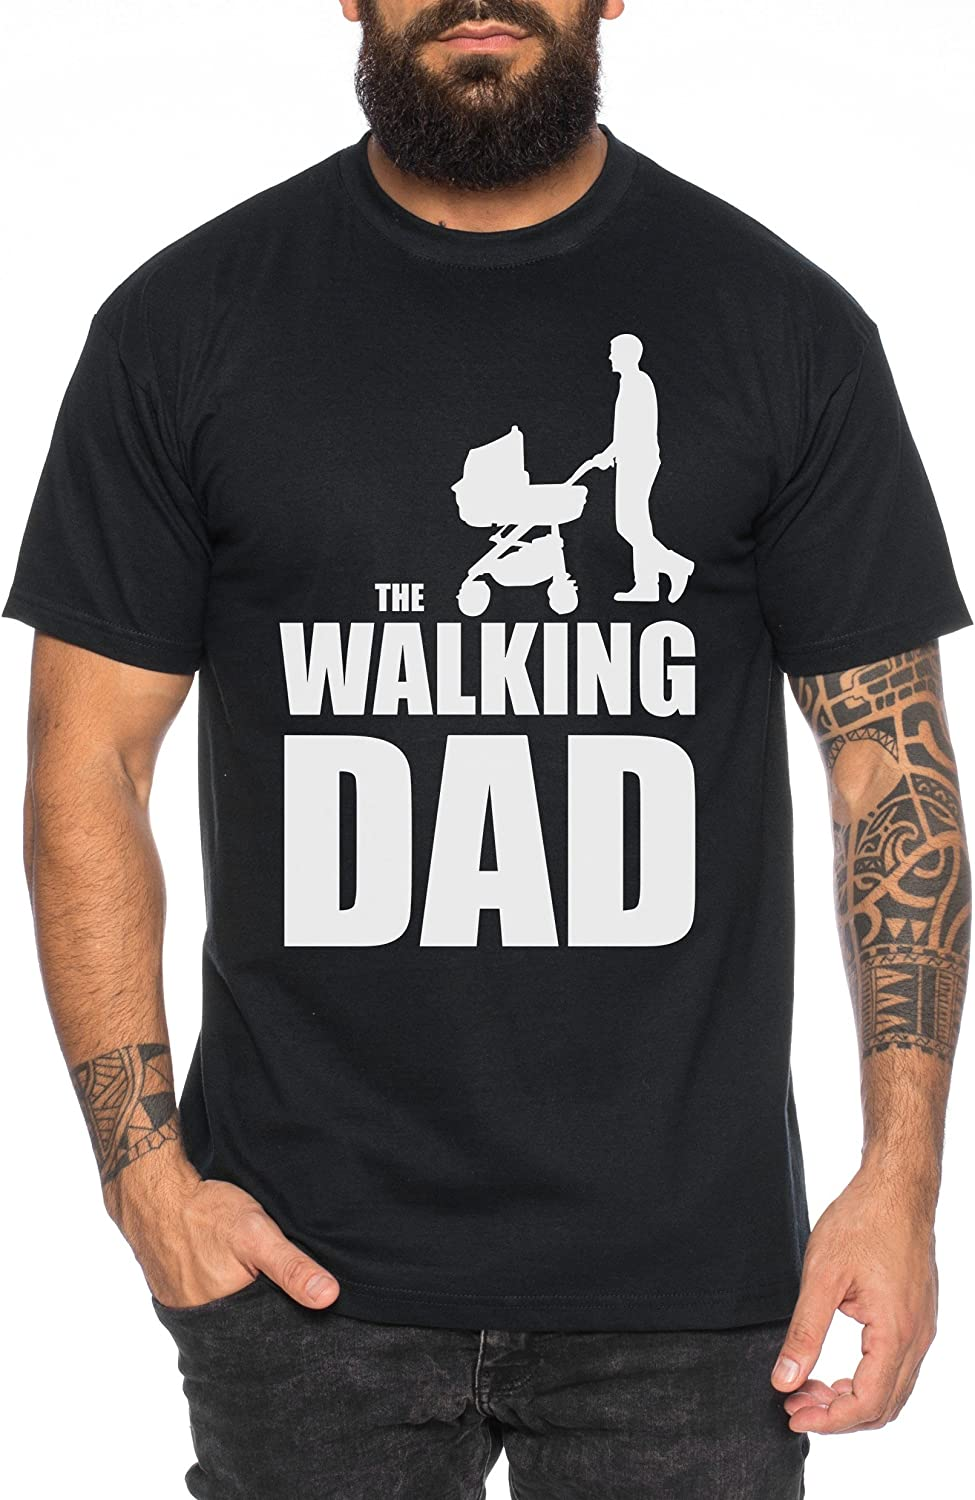 The Walking Dad Camiseta de Hombre Nerd Dead